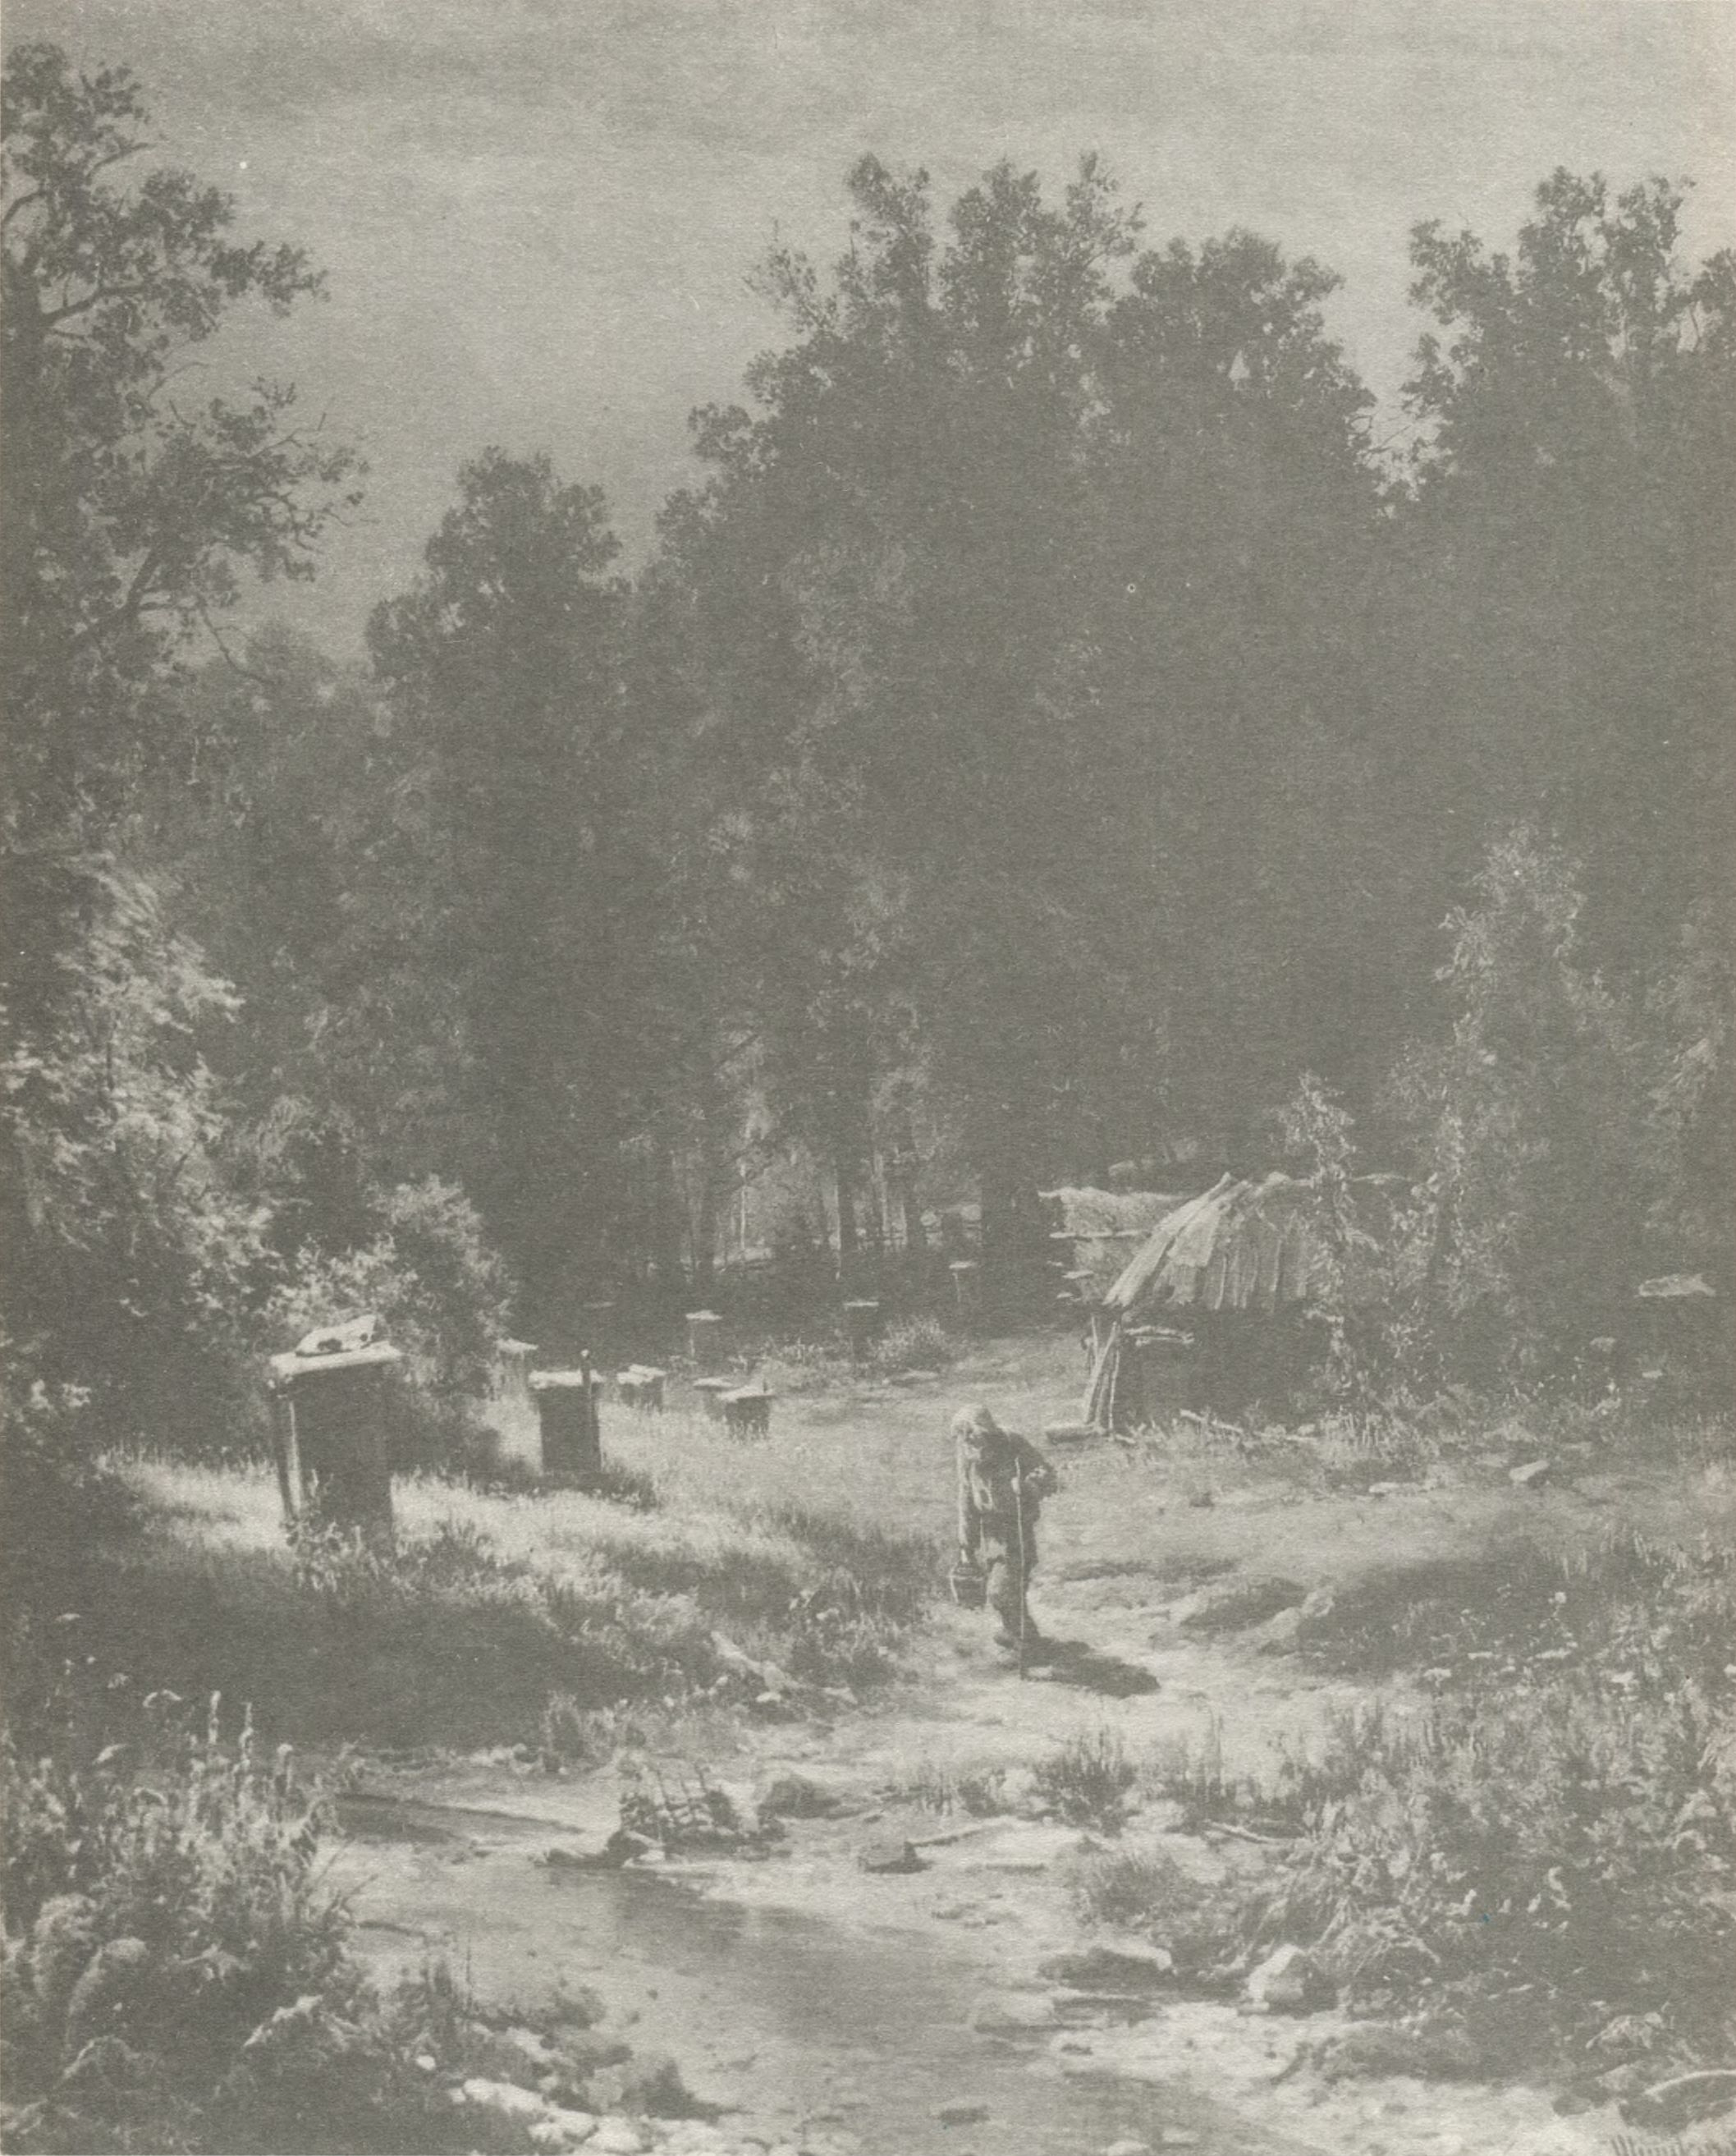 27. Пасека в лесу. 1876 (Apiary in the Wood. 1876)